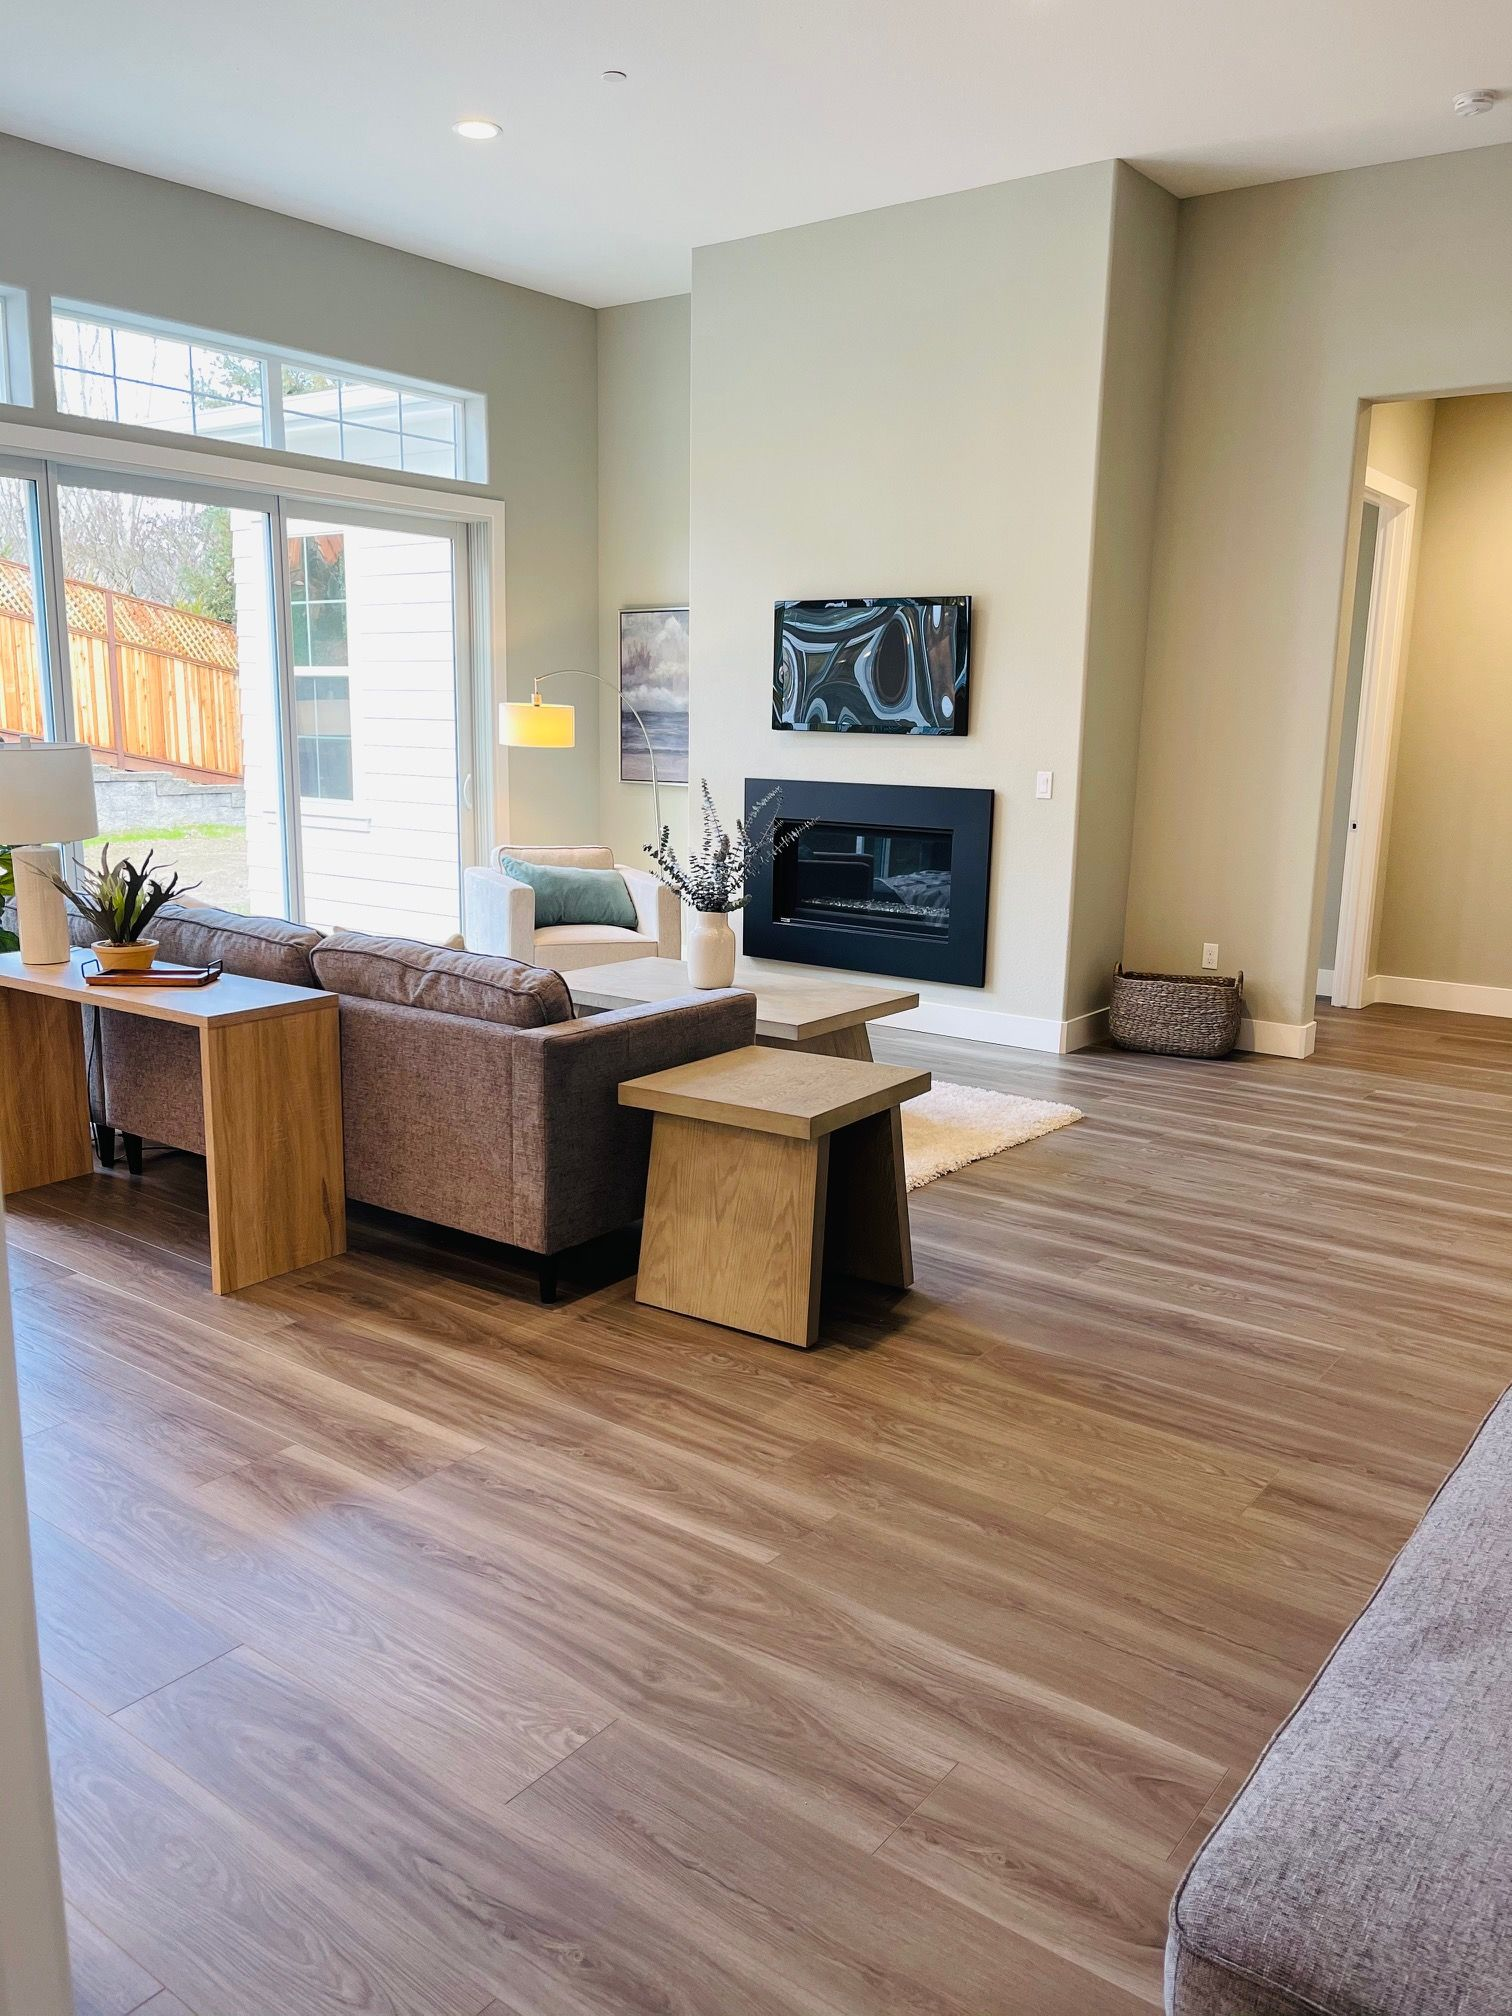 Living Area featured in the Lot 14 By Lafferty Communities in Santa Rosa, CA